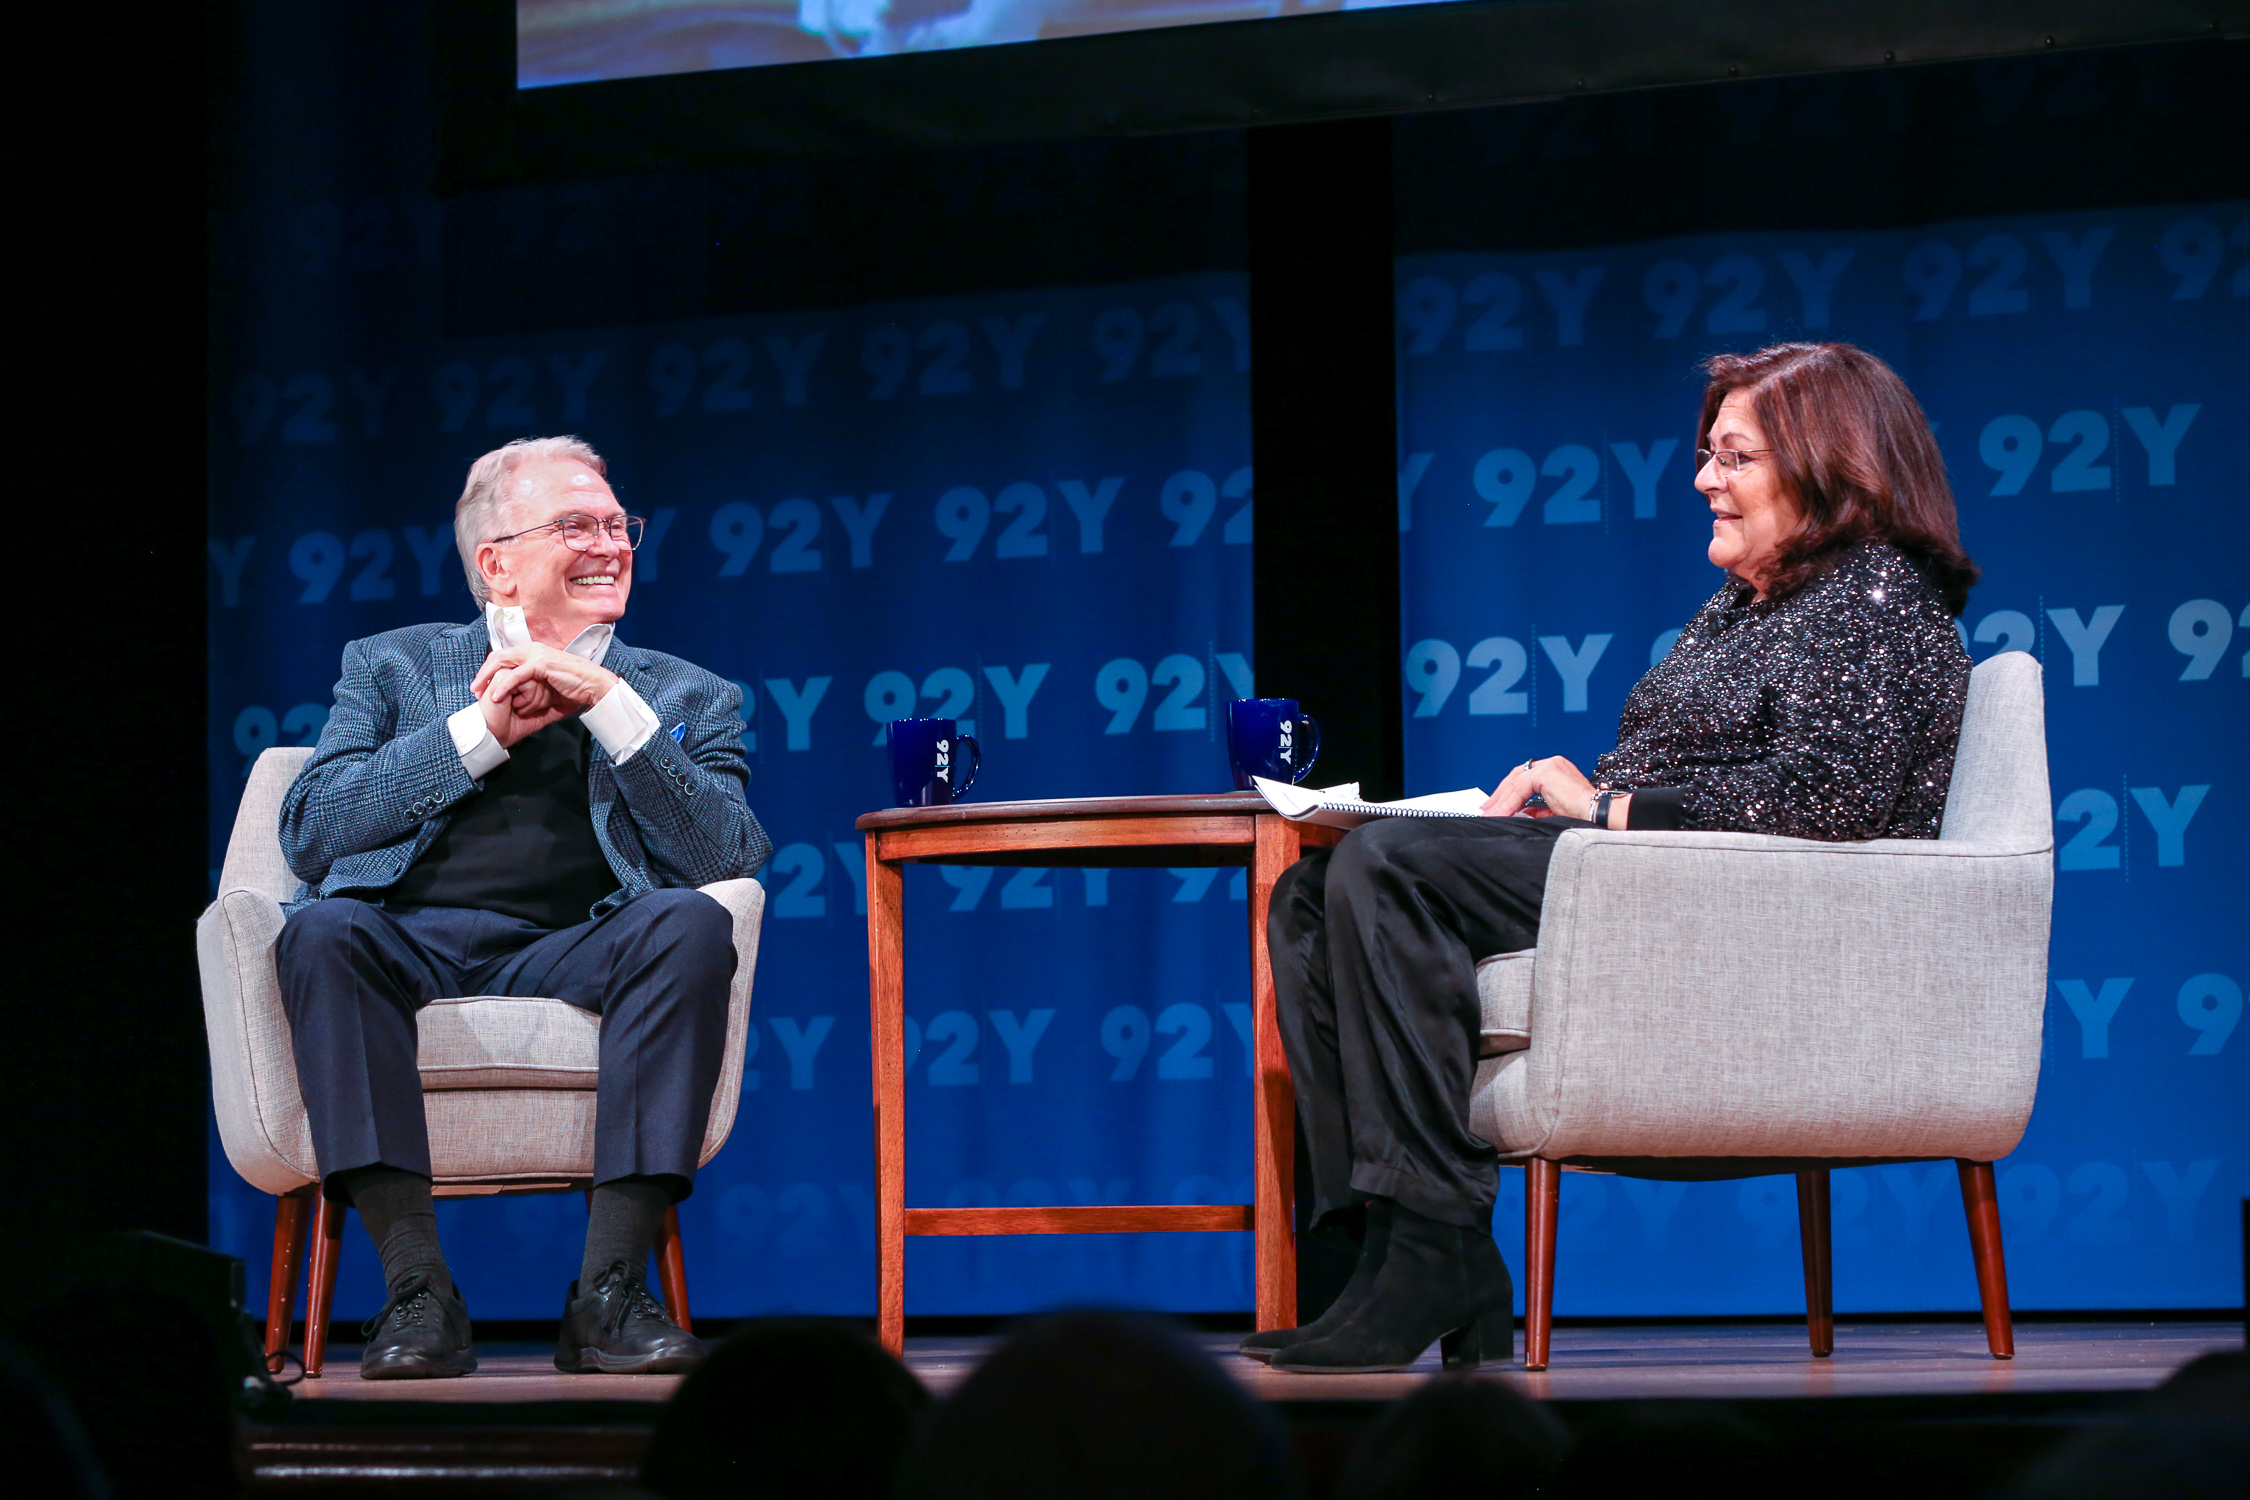 Bob Mackie and Fern Mallis at the 92nd Street Y.